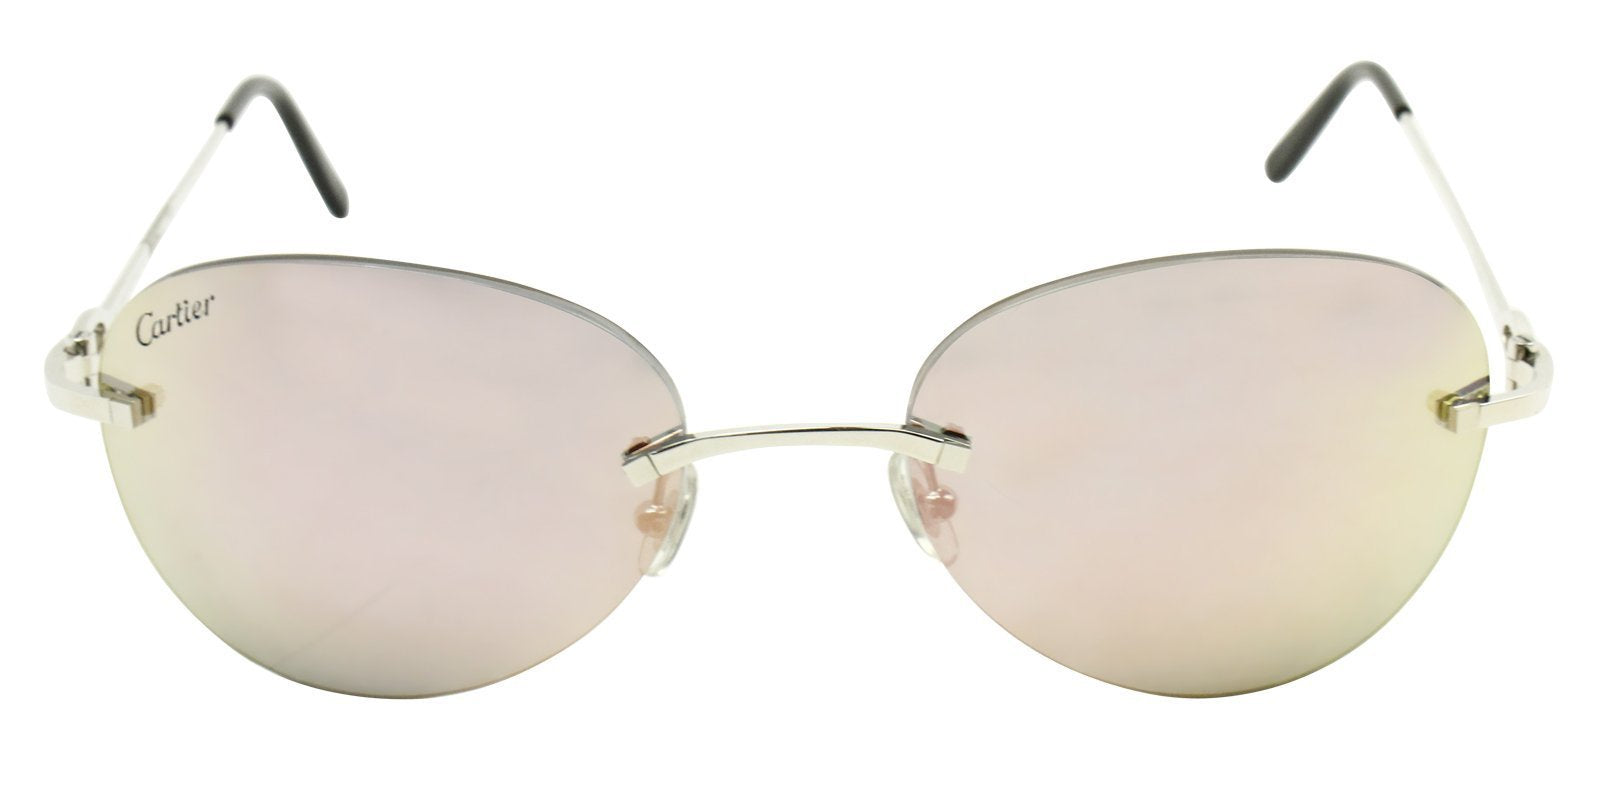 Cartier - C Decor Silver Oval Unisex Sunglasses - 57mm-Sunglasses-Designer Eyes